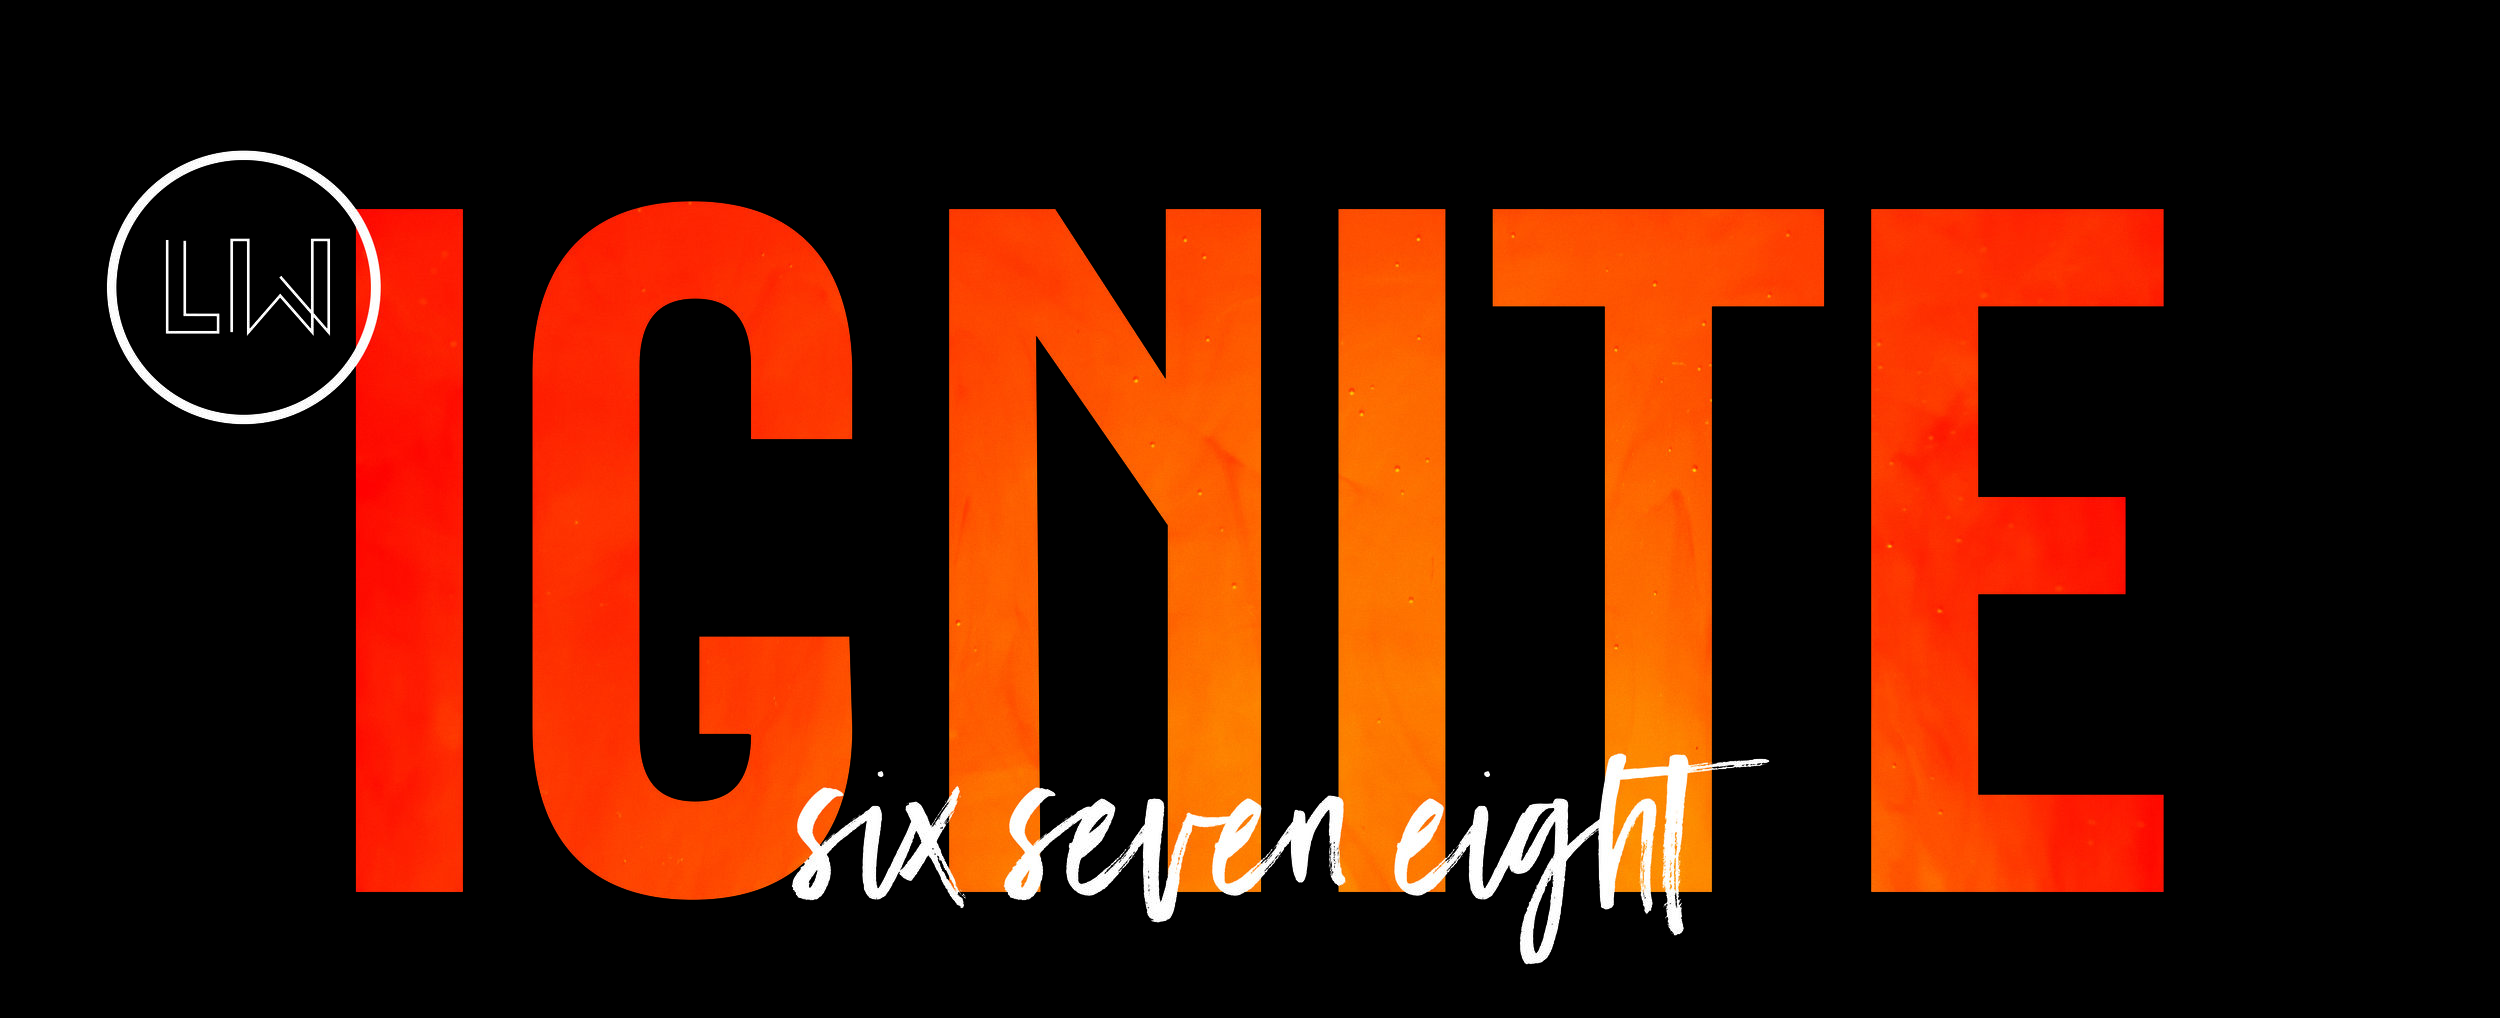 IGNITE-5 copy.jpg